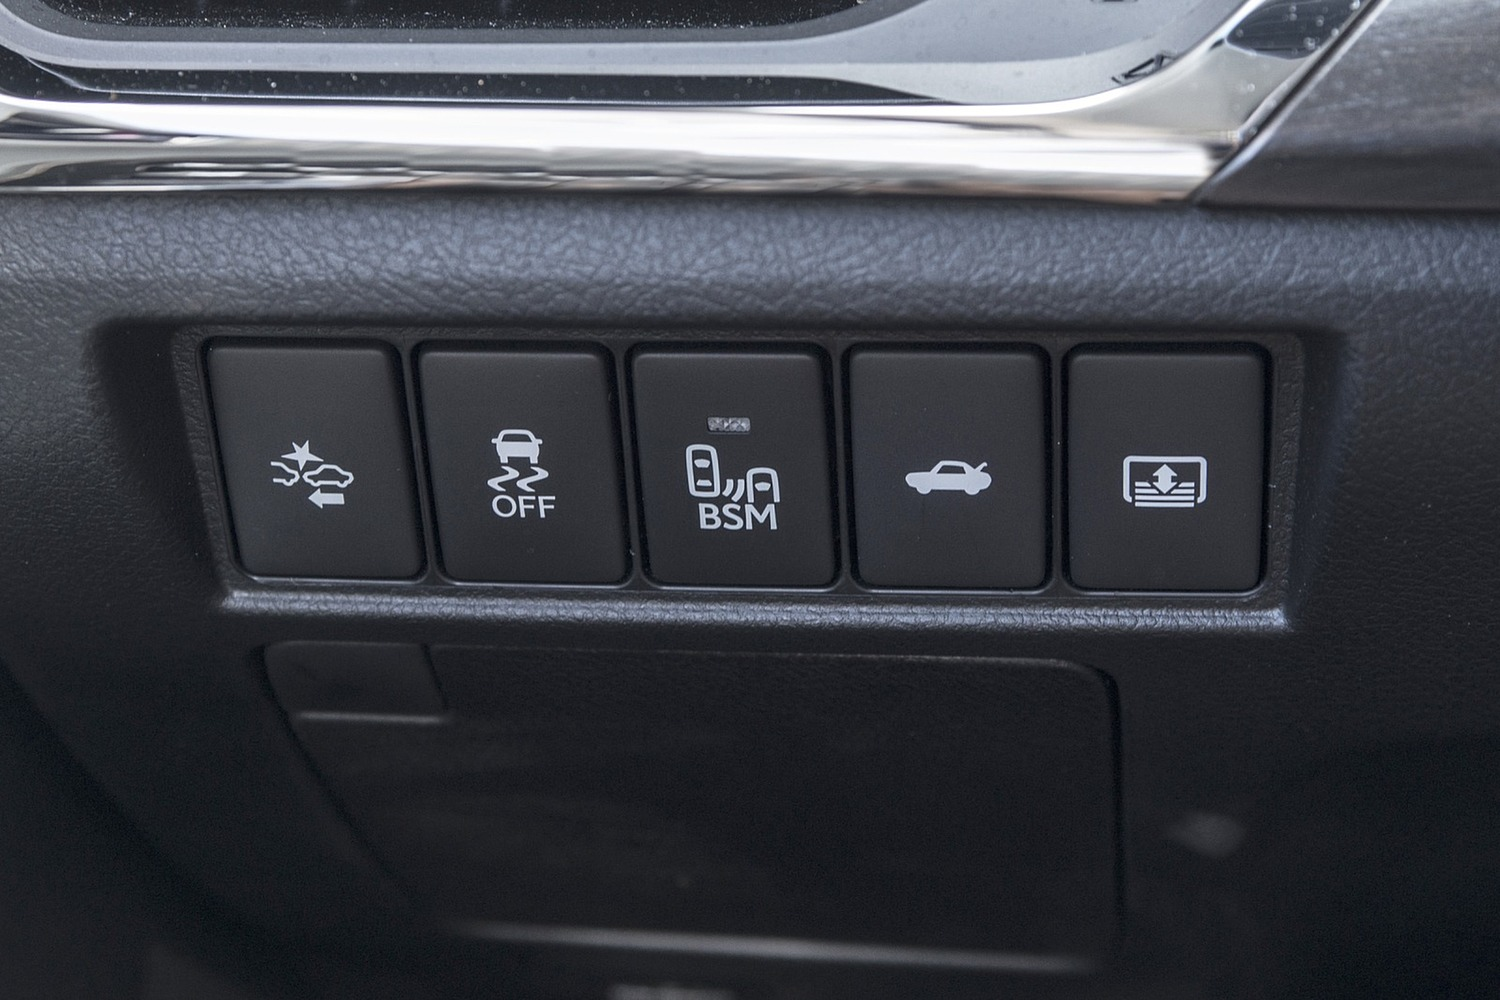 Toyota Avalon Hybrid Sedan Interior Detail (2017 model year shown)